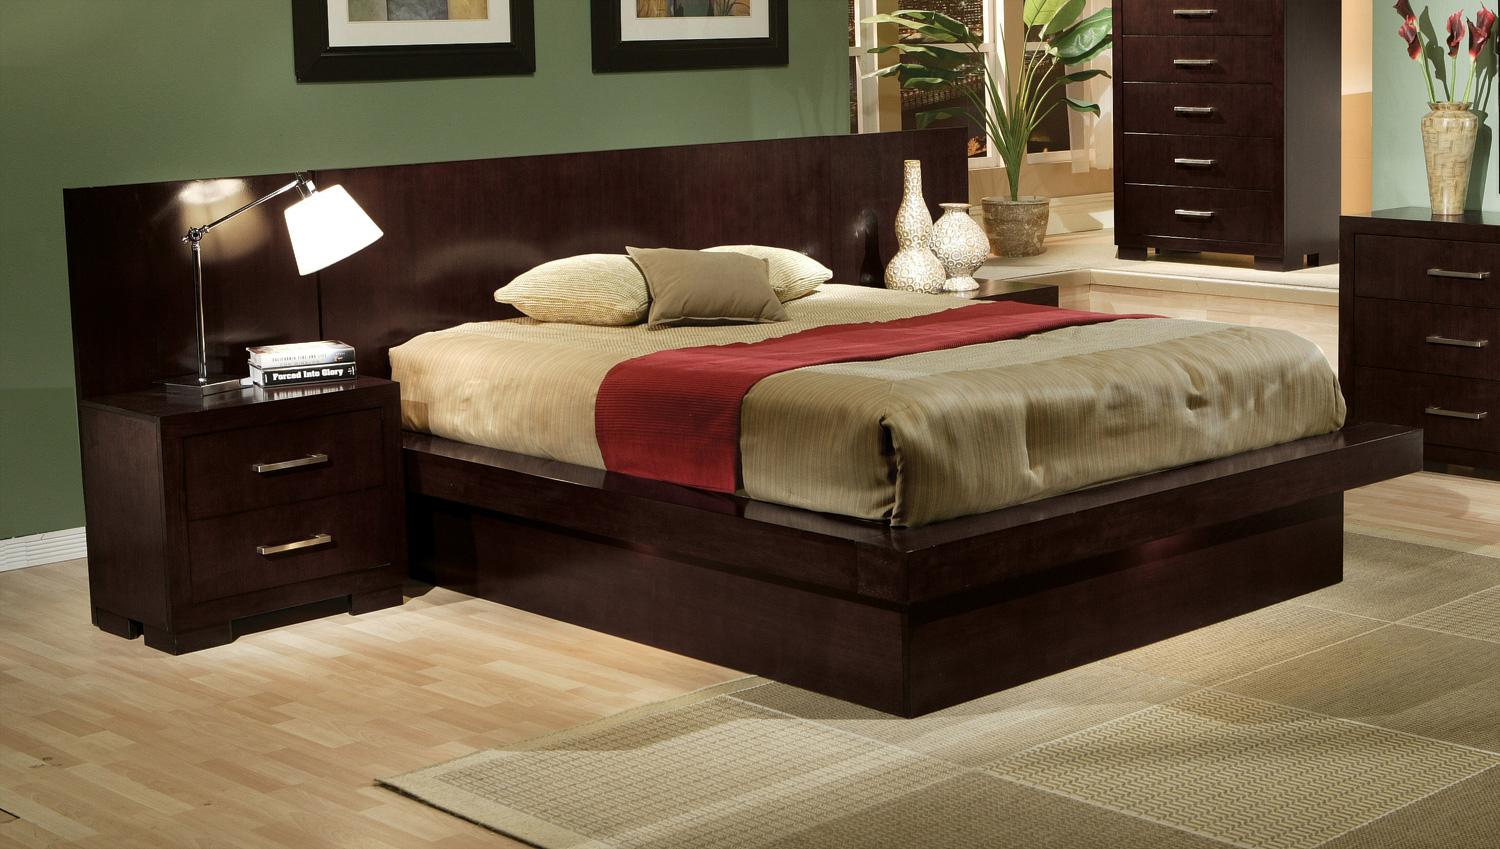 Modern platform bedroom sets - 5 Pc Jessica Queen Pier Platform Bedroom Set With Rail Seating And Lights